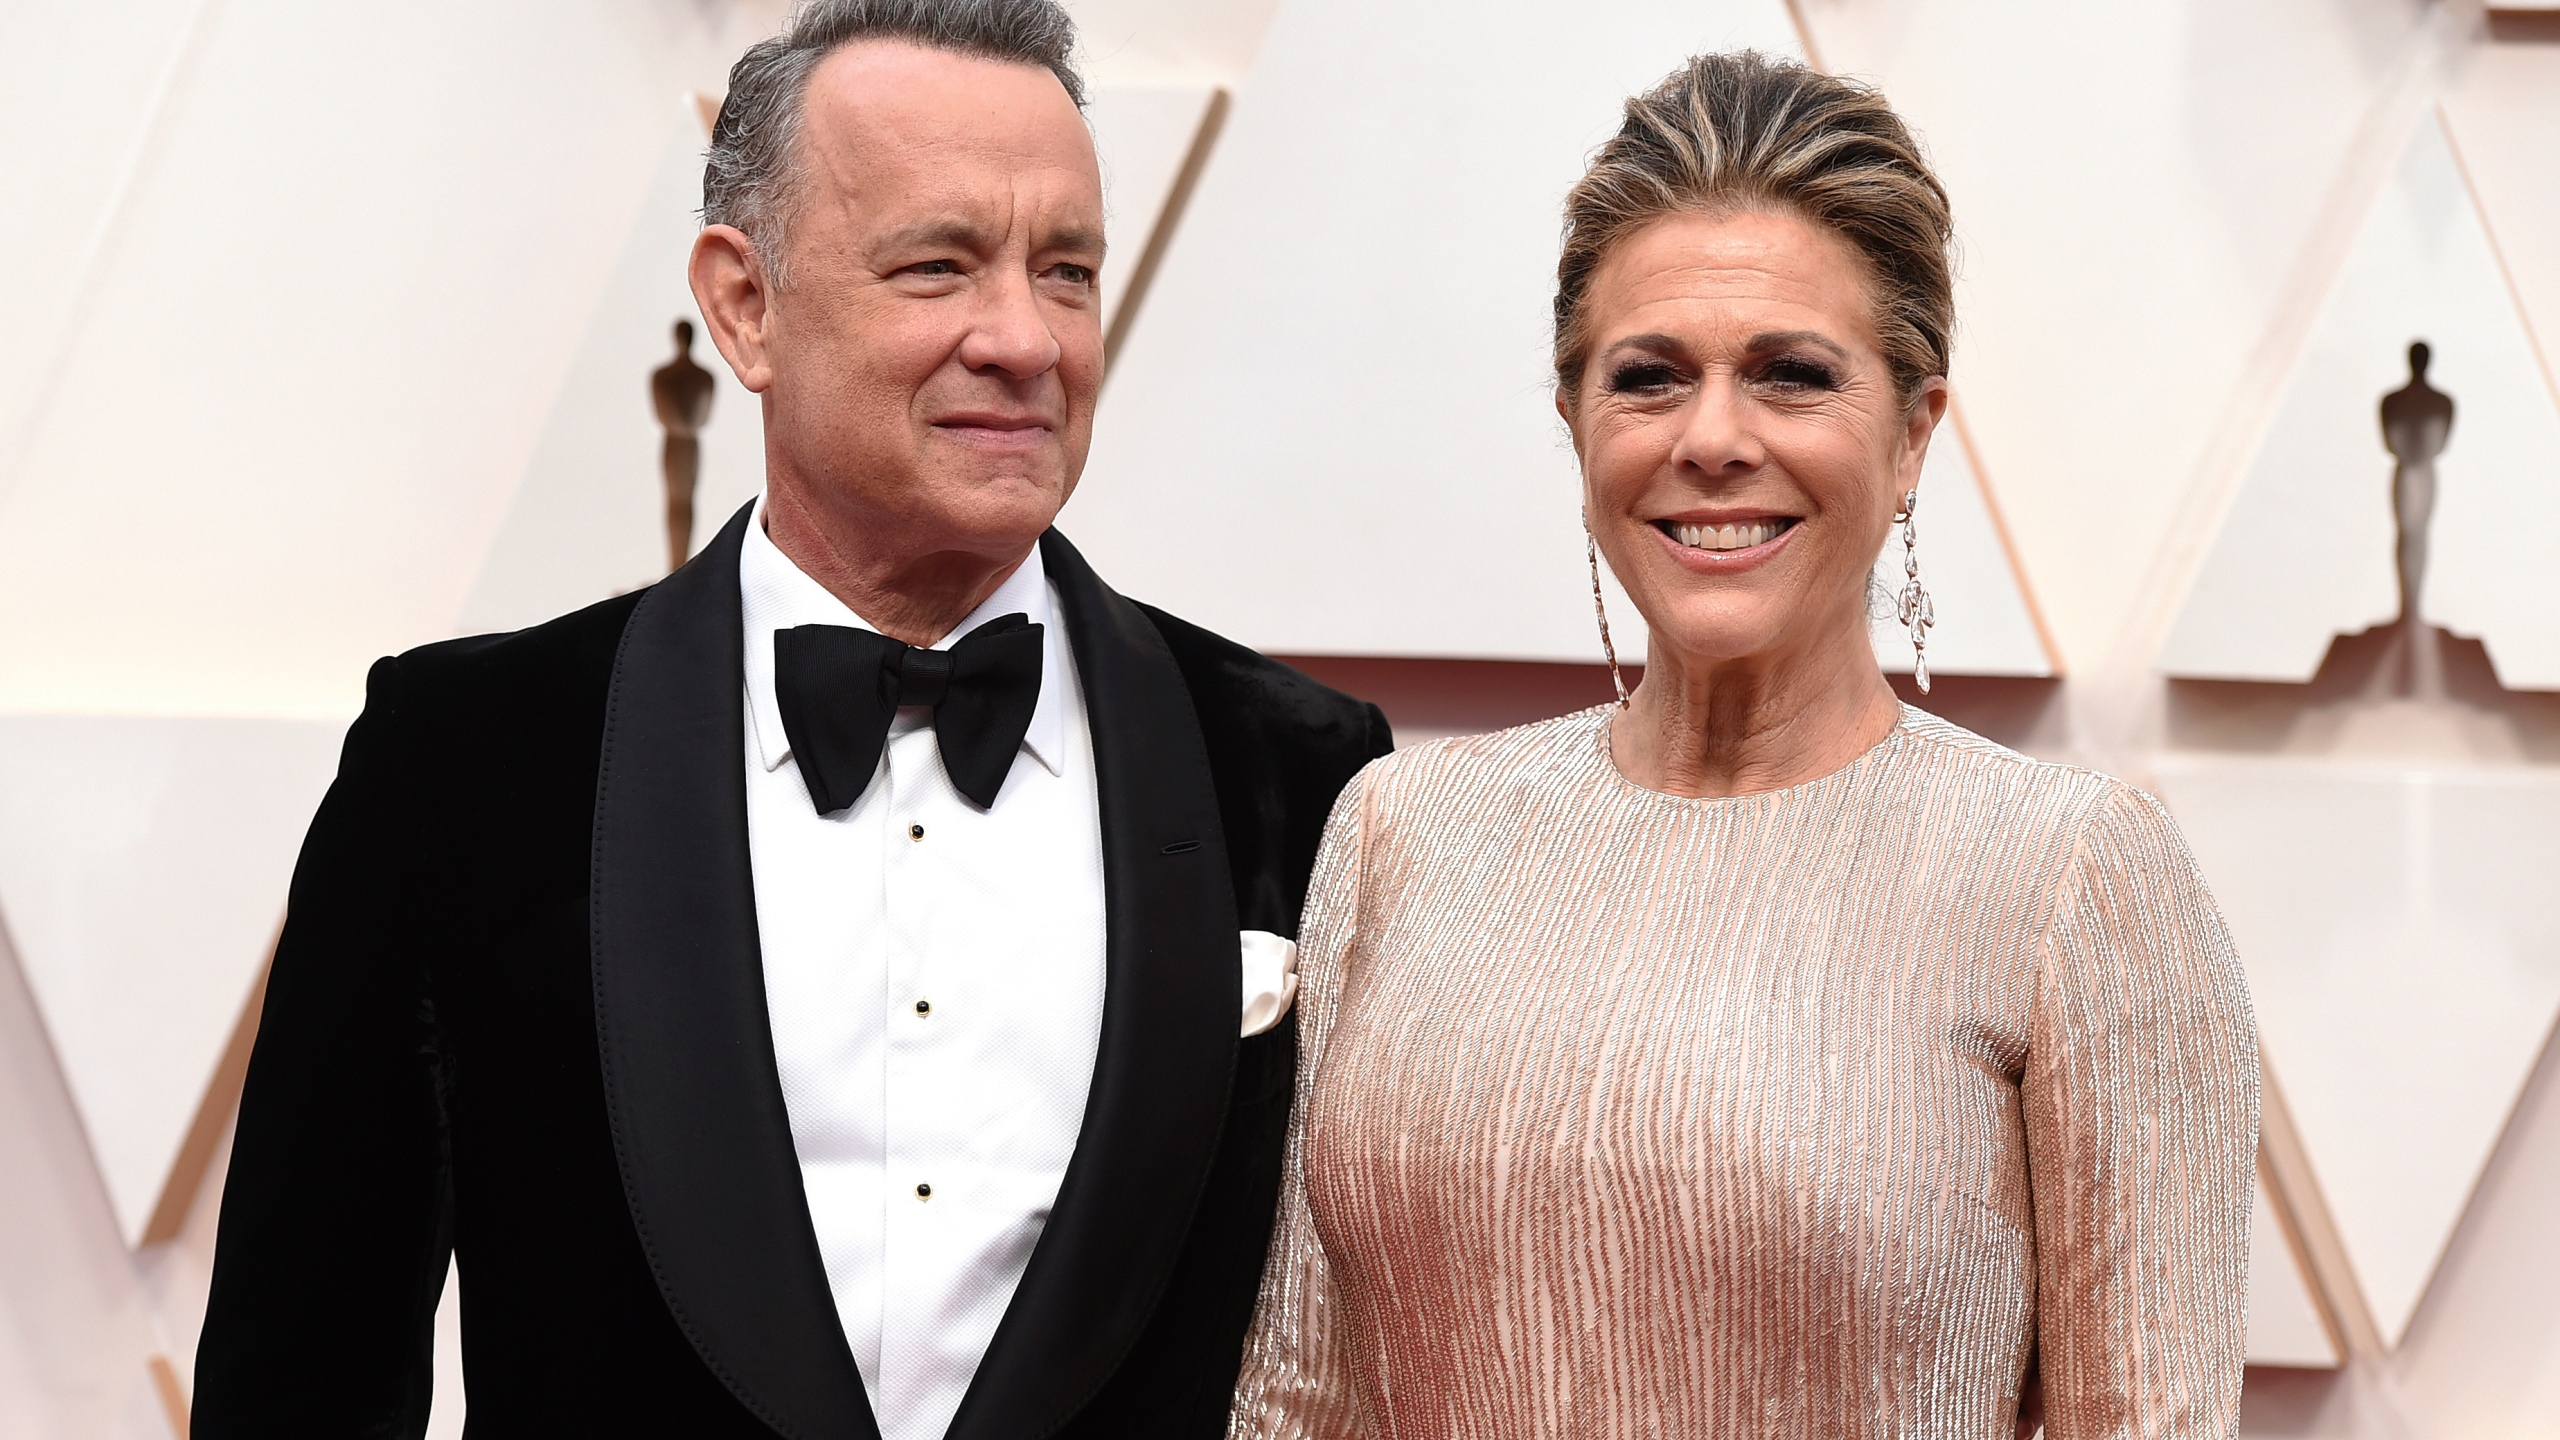 "In this Feb. 9, 2020 file photo, Tom Hanks, left, and Rita Wilson arrive at the Oscars at the Dolby Theatre in Los Angeles. The couple have tested positive for the coronavirus, the actor said in a statement Wednesday, March 11. The 63-year-old actor said they will be ""tested, observed and isolated for as long as public health and safety requires."" (Photo by Jordan Strauss/Invision/AP, File)"